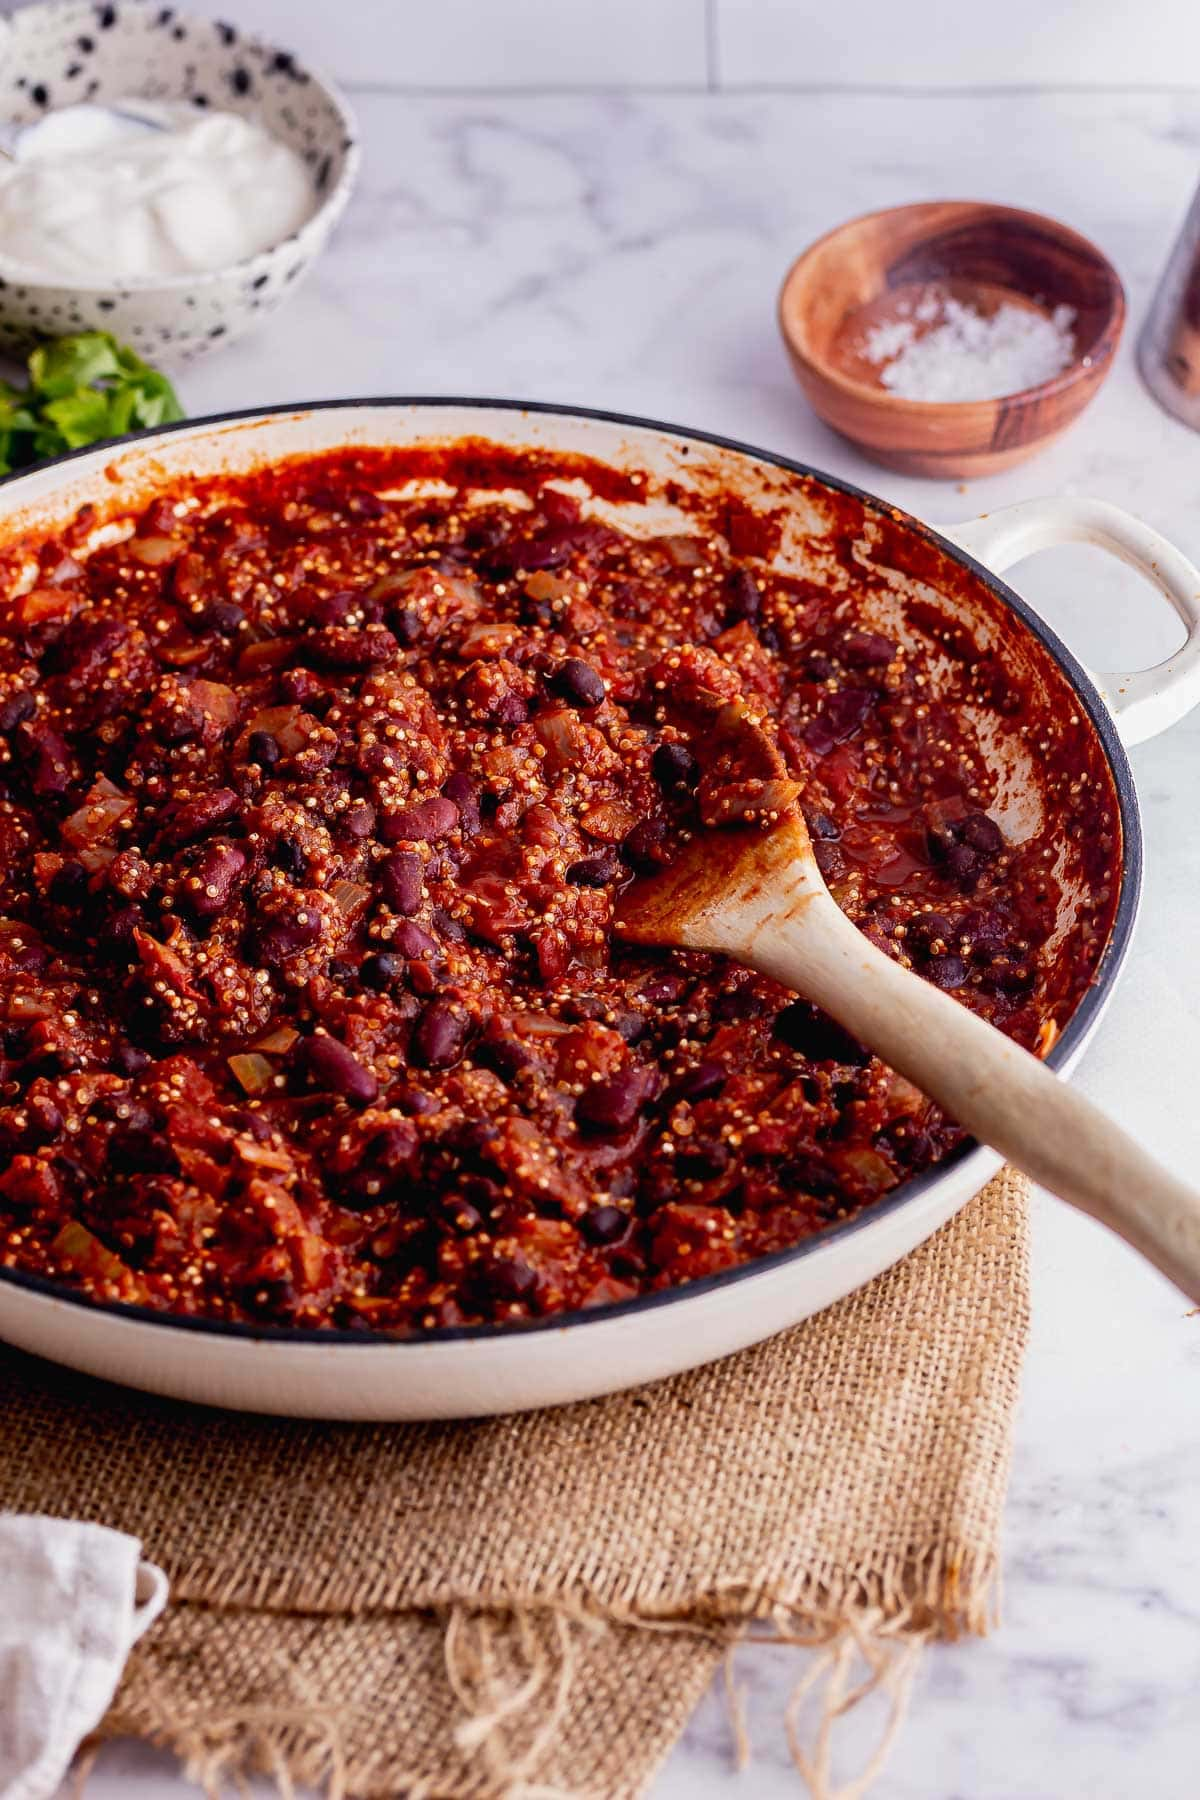 White casserole dish of vegan chilli with a wooden spoon